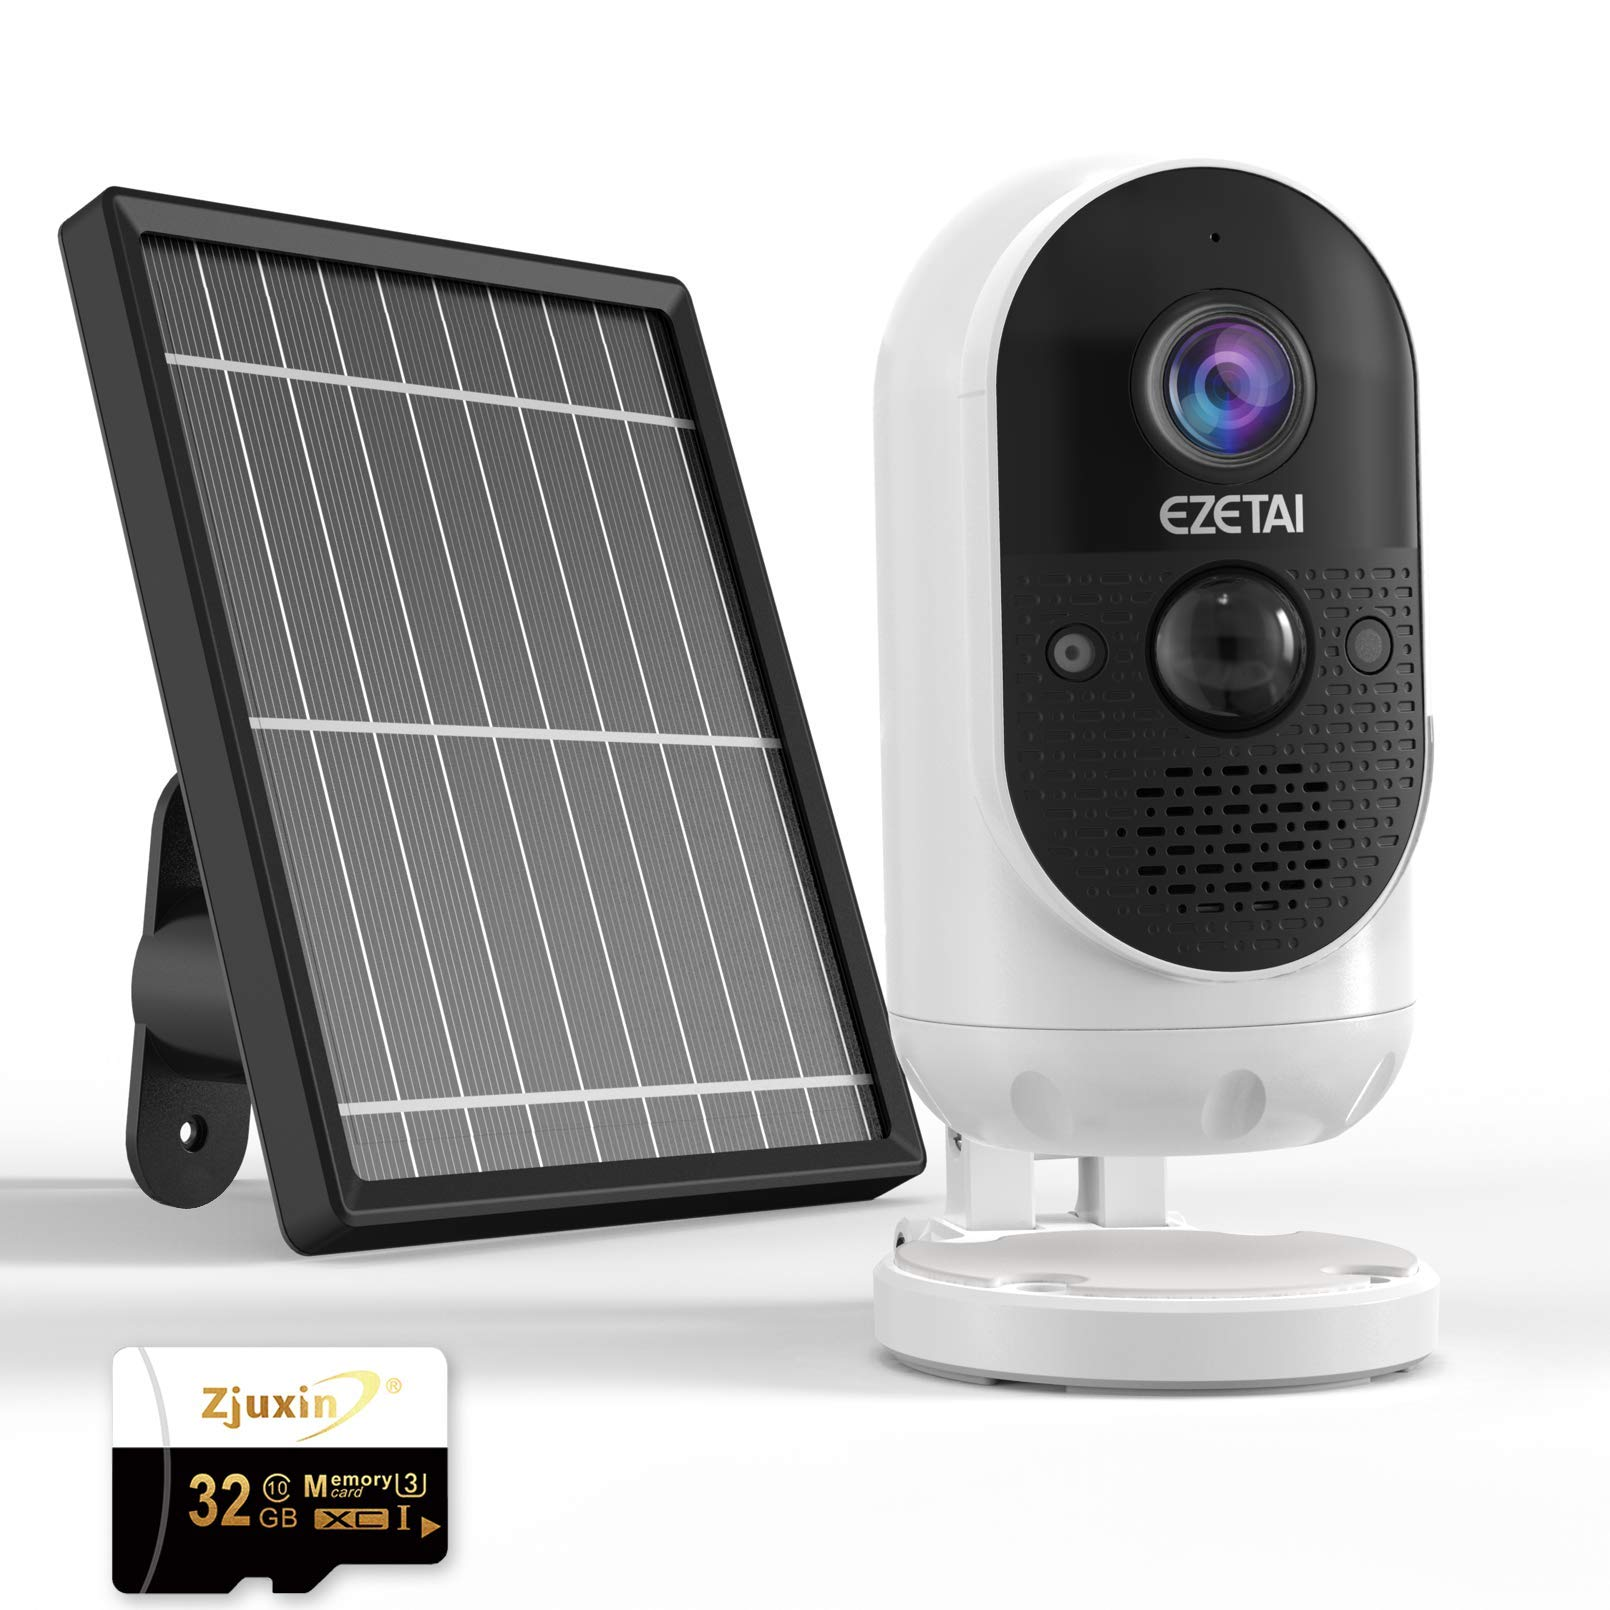 Home Security Camera System Wireless Indoors/Outdoor,WiFi Solar Rechargeable Battery Power IP Surveillance CCTV Camera,1080p,Motion Detection,Night Vision,2-Way Audio,Waterproof,Cloud+32gb TF Card